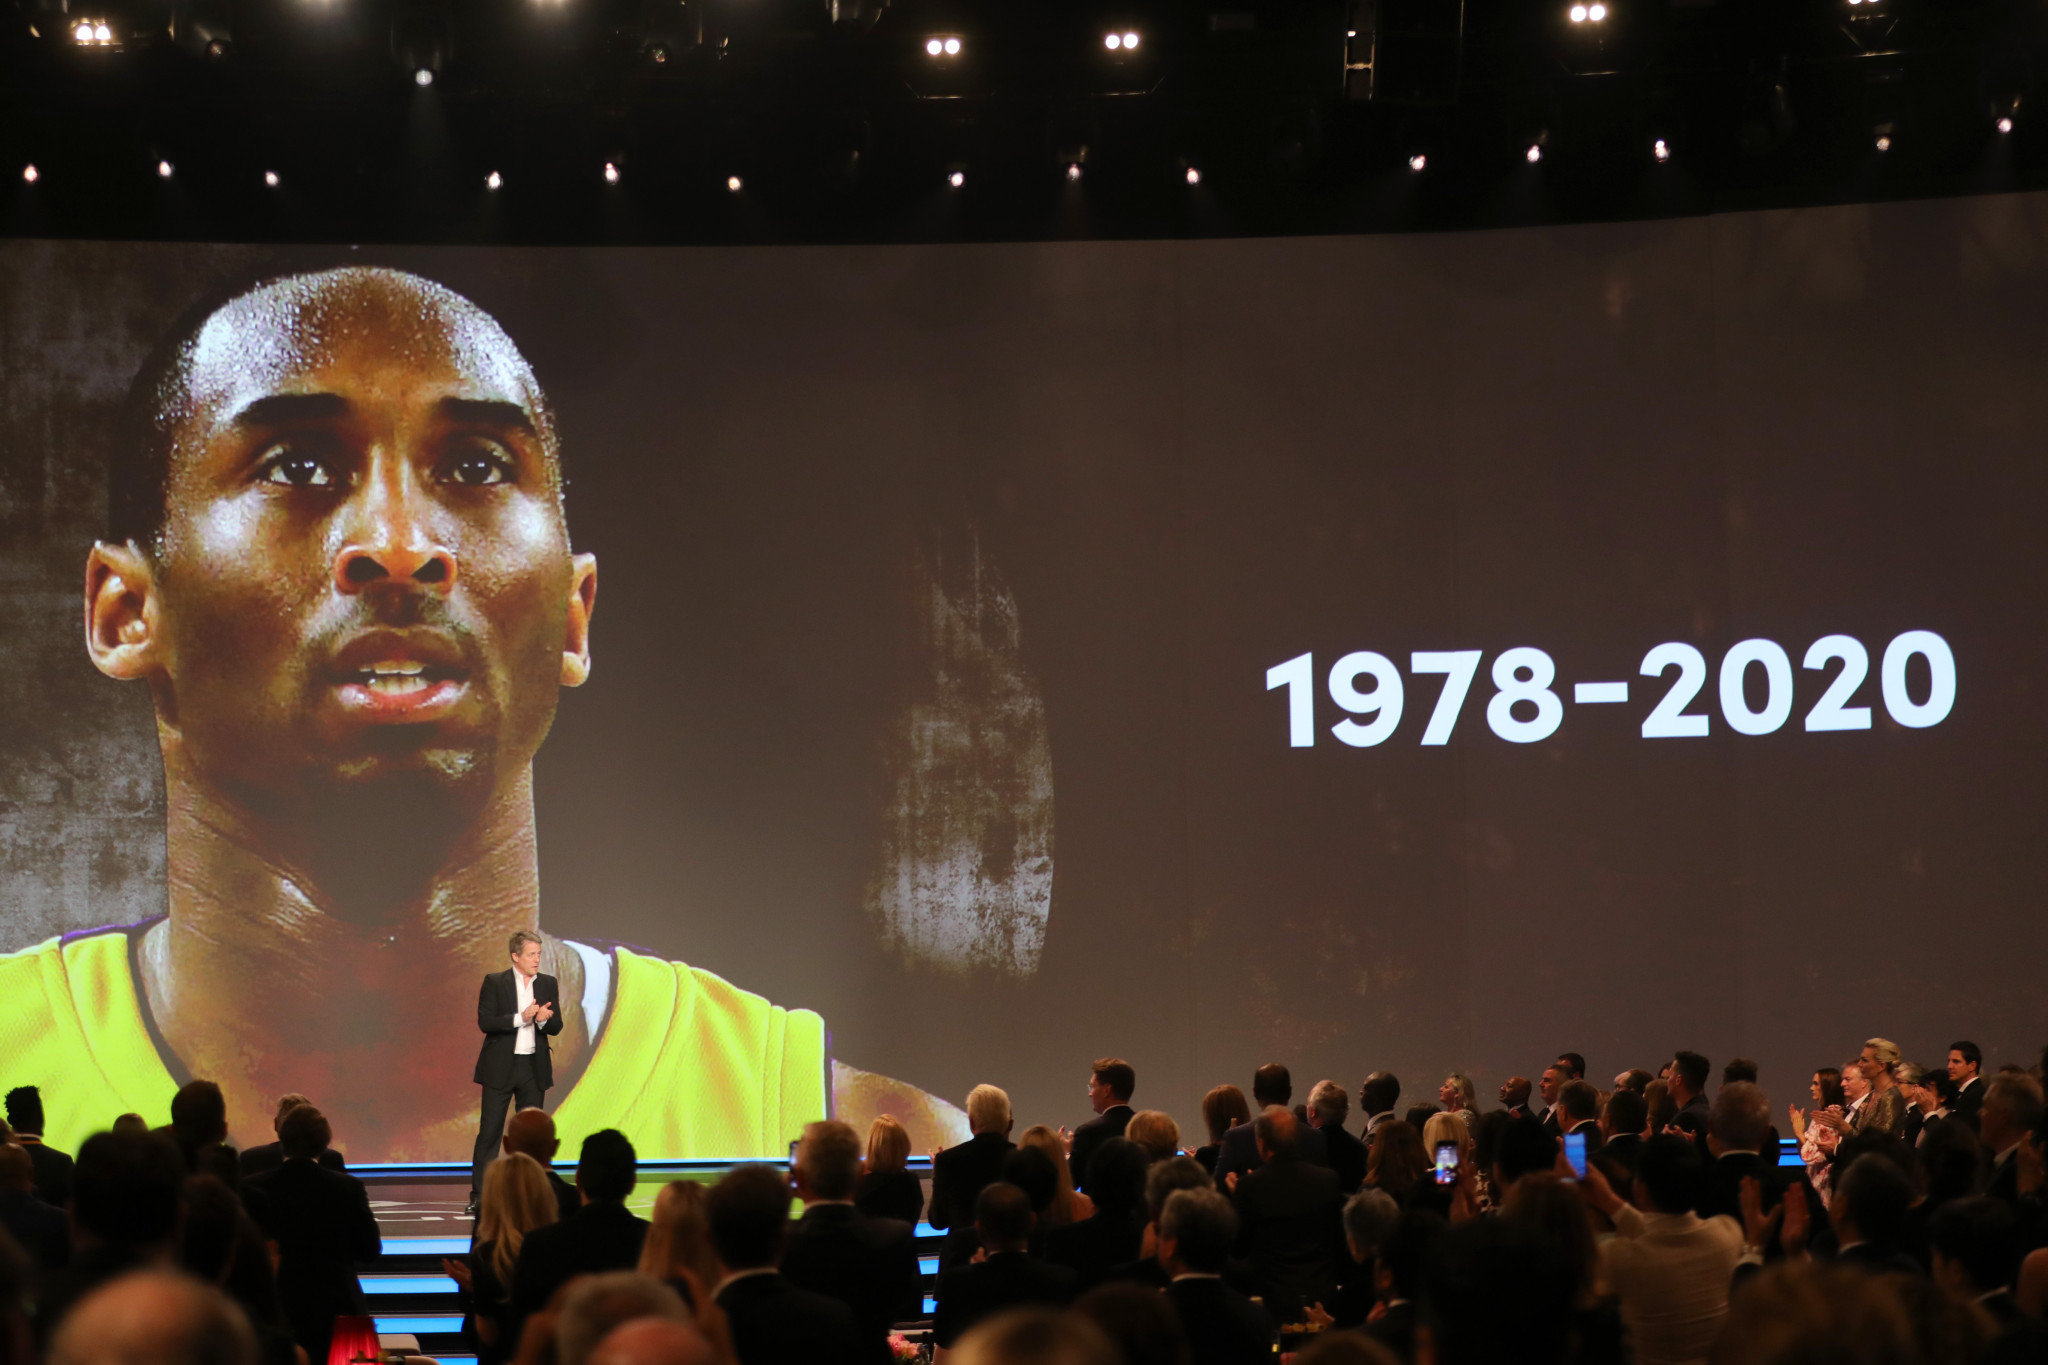 Bryant poised for posthumous entry into Basketball Hall of Fame